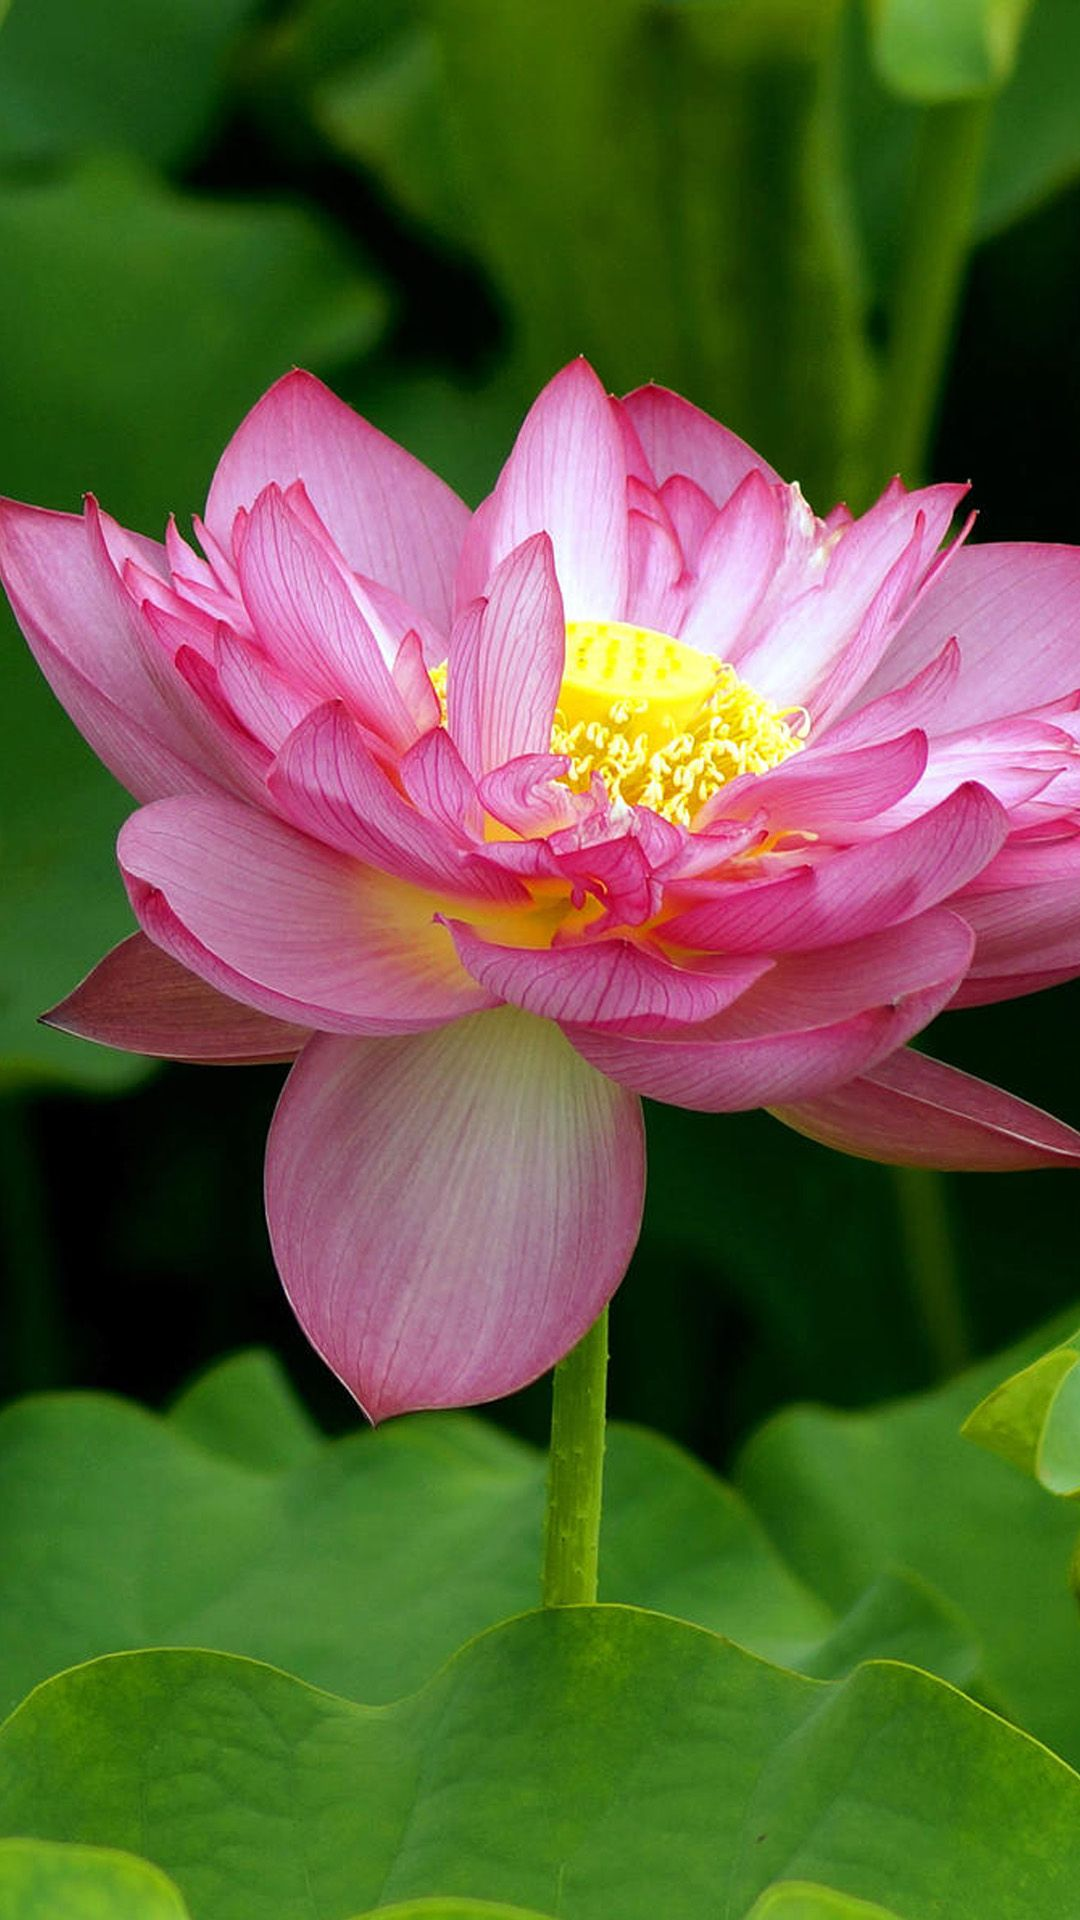 The Pink Lotus 25 Close Up Flowers Photography Iphone Wallpapers